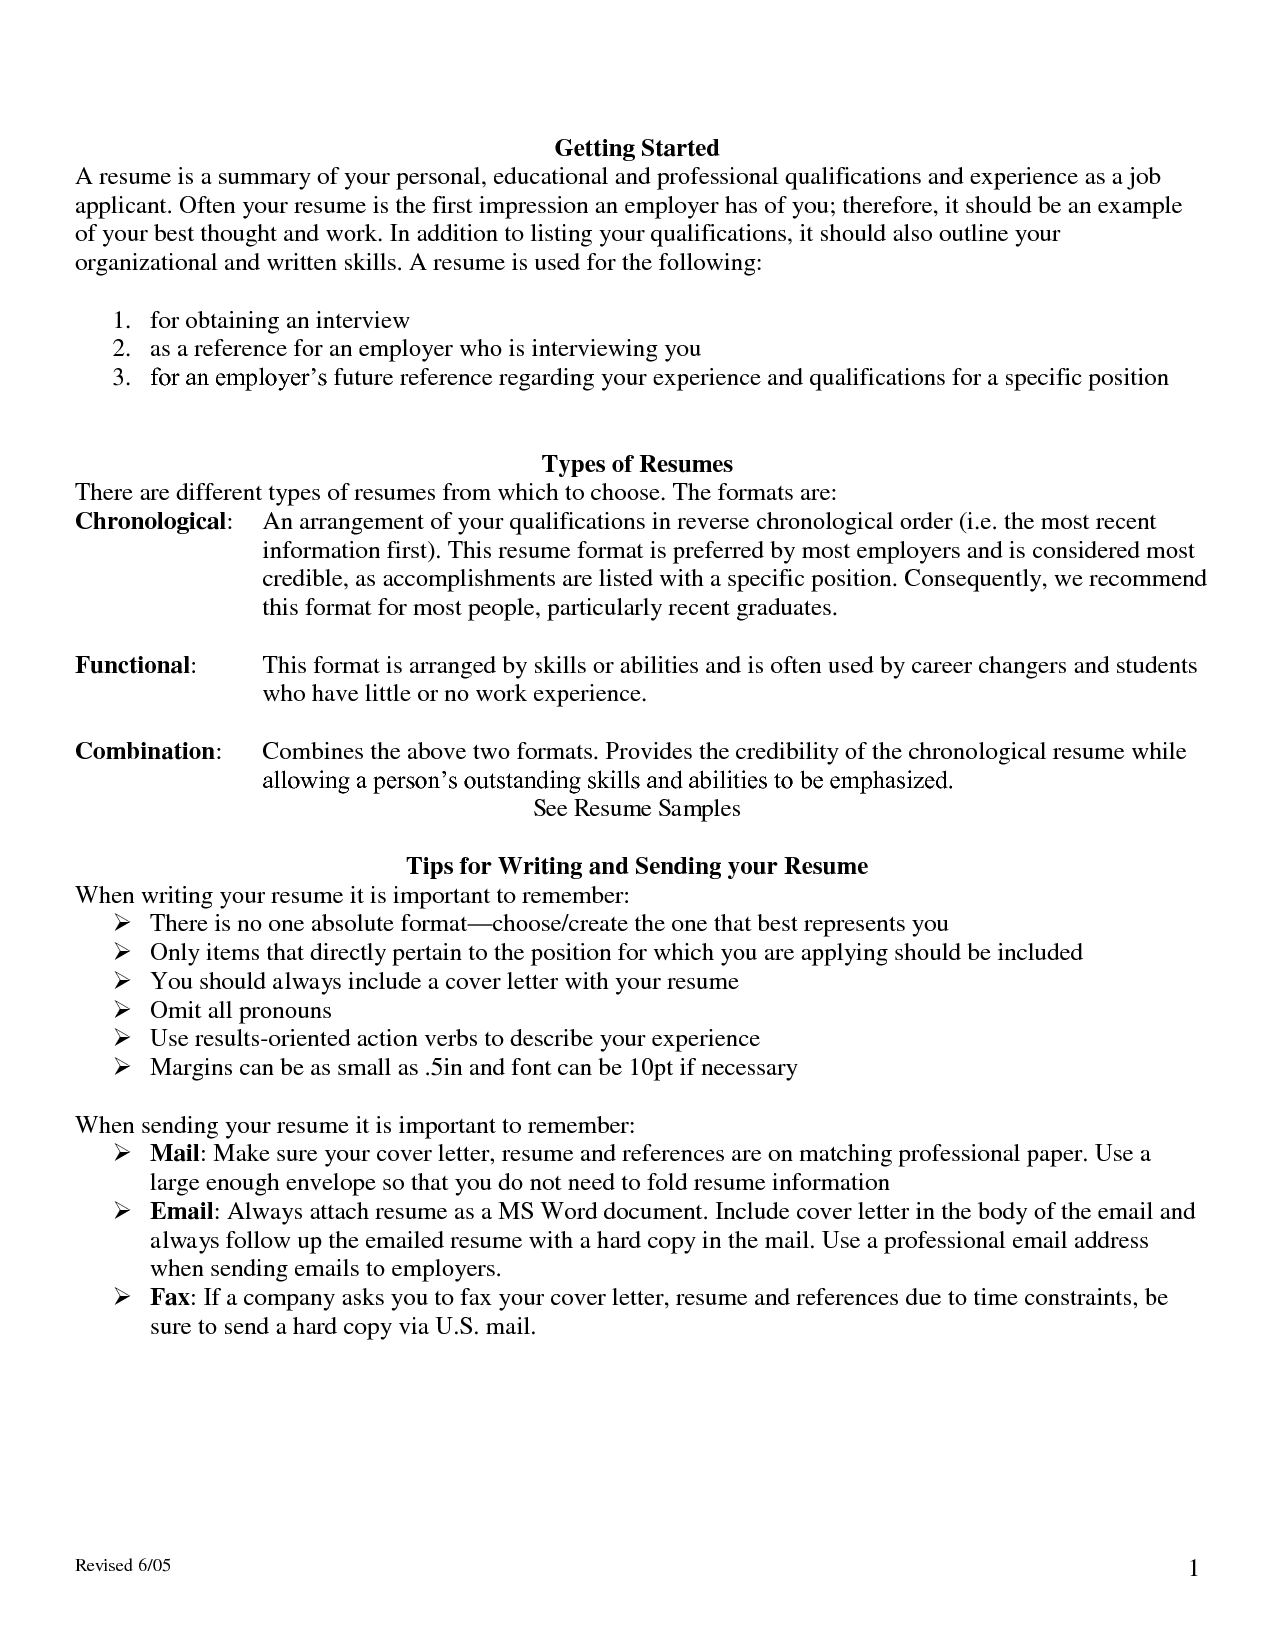 pharmaceutical sales resume sample entry level types of resumes